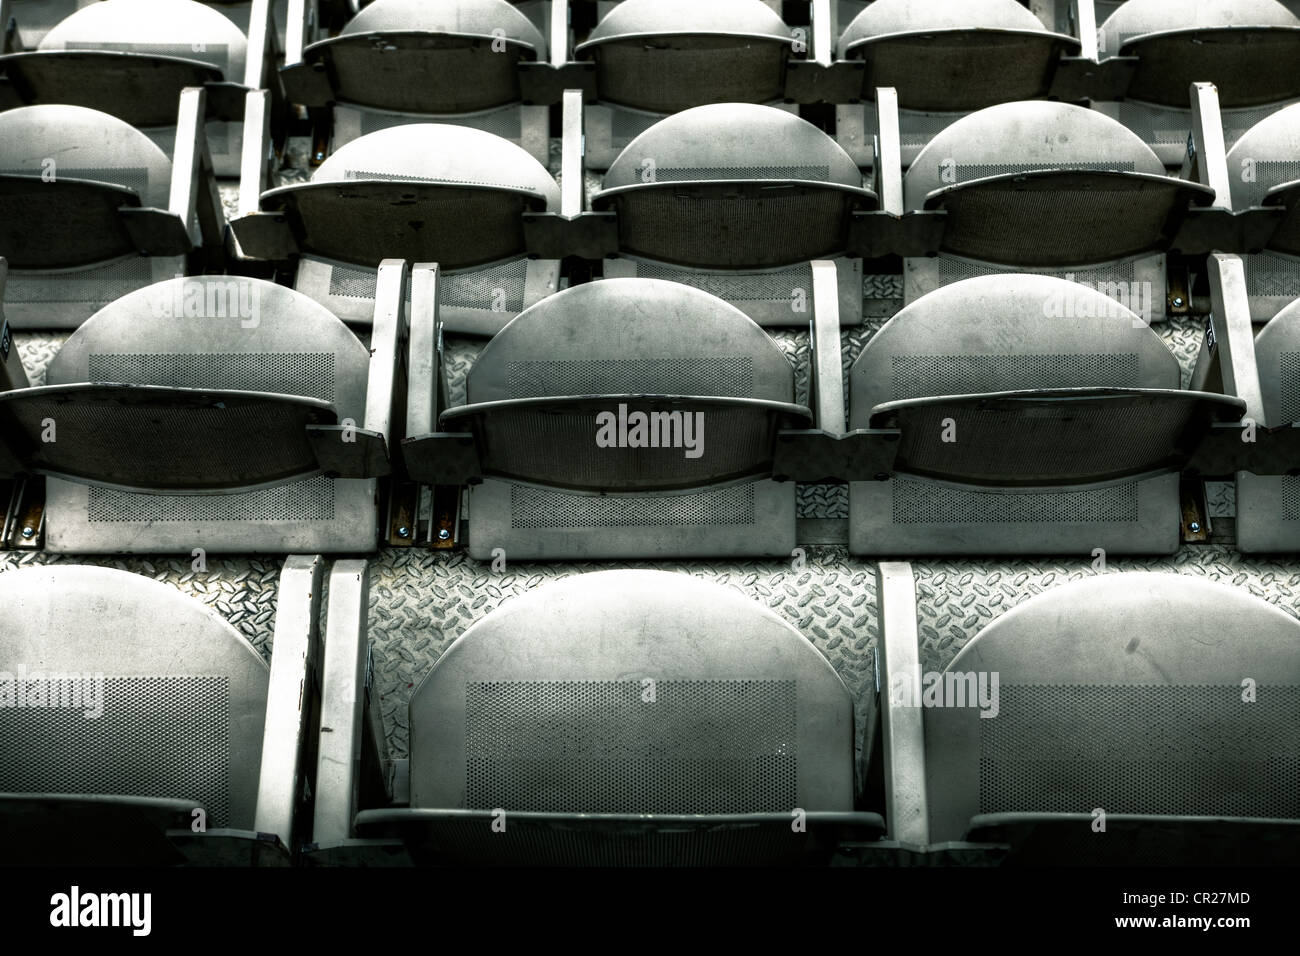 Rows of chairs in an open-air theater - Stock Image